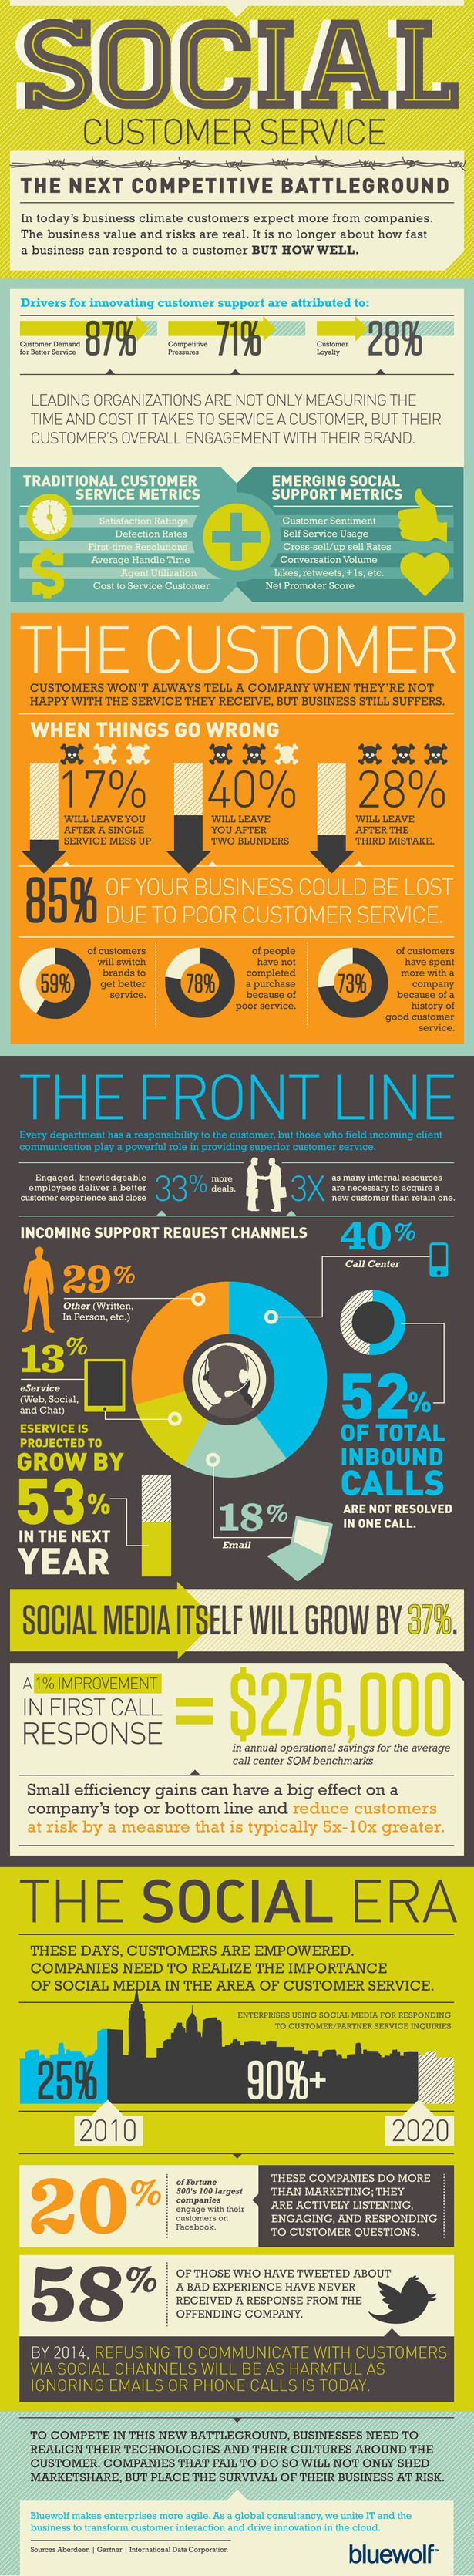 Social media has allowed companies to become more responsive than ever before. Today's infographic Social Customer Service: The Next Competitive Battleground shows us that companies are responding quicker than ever to their customers complaints. In fact about 84% of social media use is geared towards improving customer service